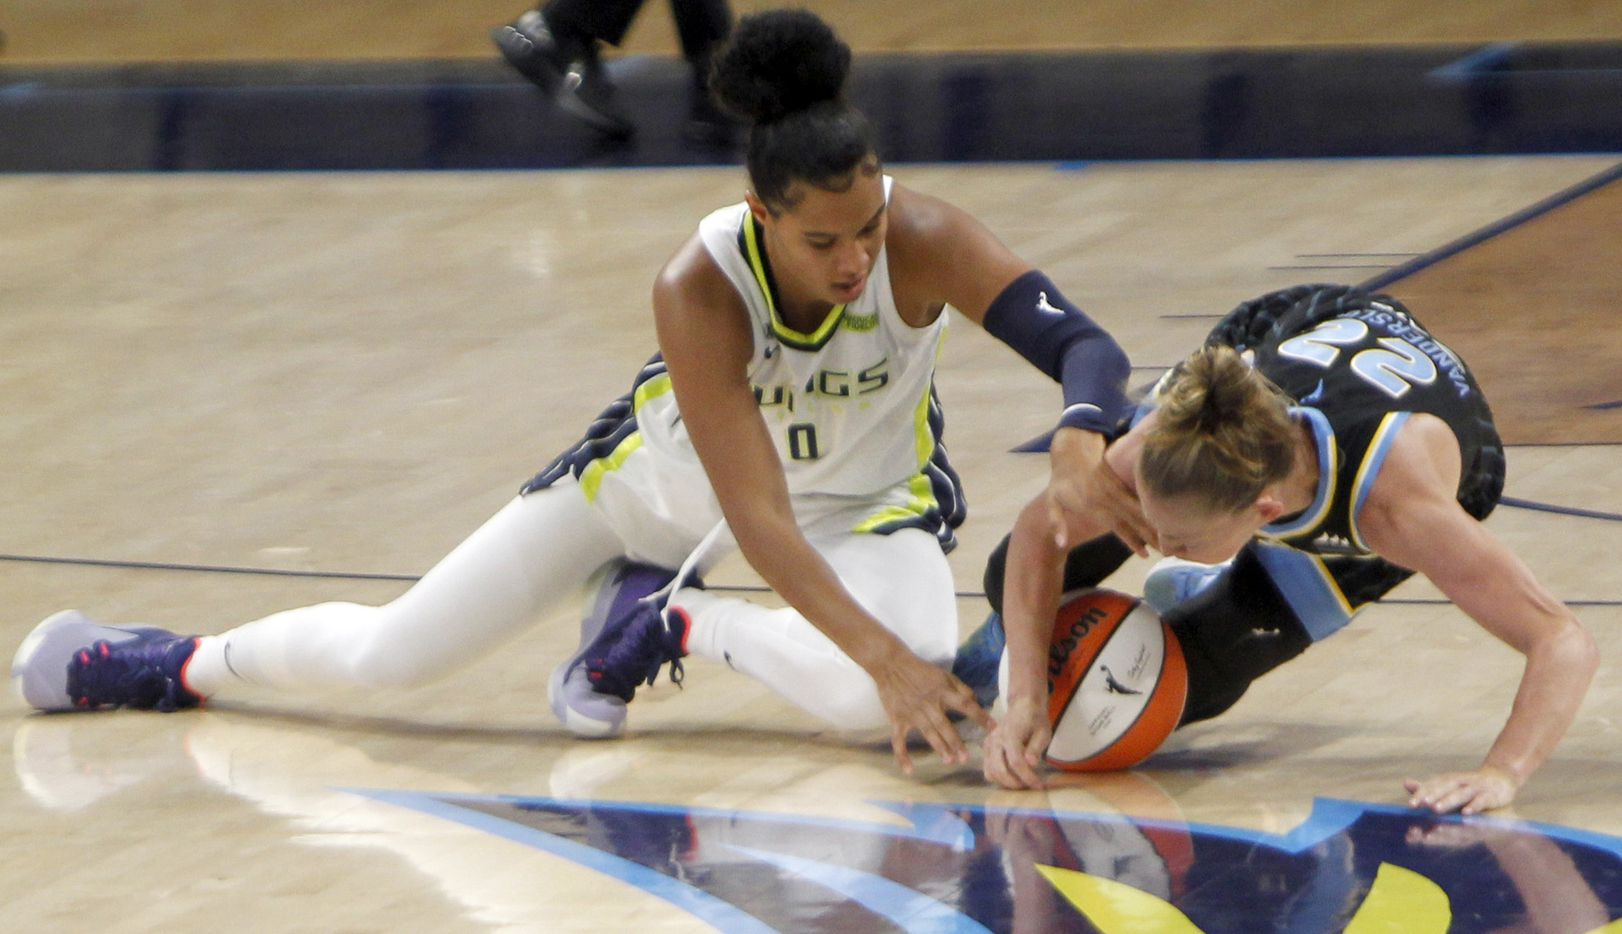 Dallas Wings forward Satou Sabally (0), left, battles Chicago Sky guard Courtney Vandersloot (22) for a loose ball during first half action. The two WNBA teams played their game at College Park Center in Arlington on July 2, 2021. (Steve Hamm/ Special Contributor)